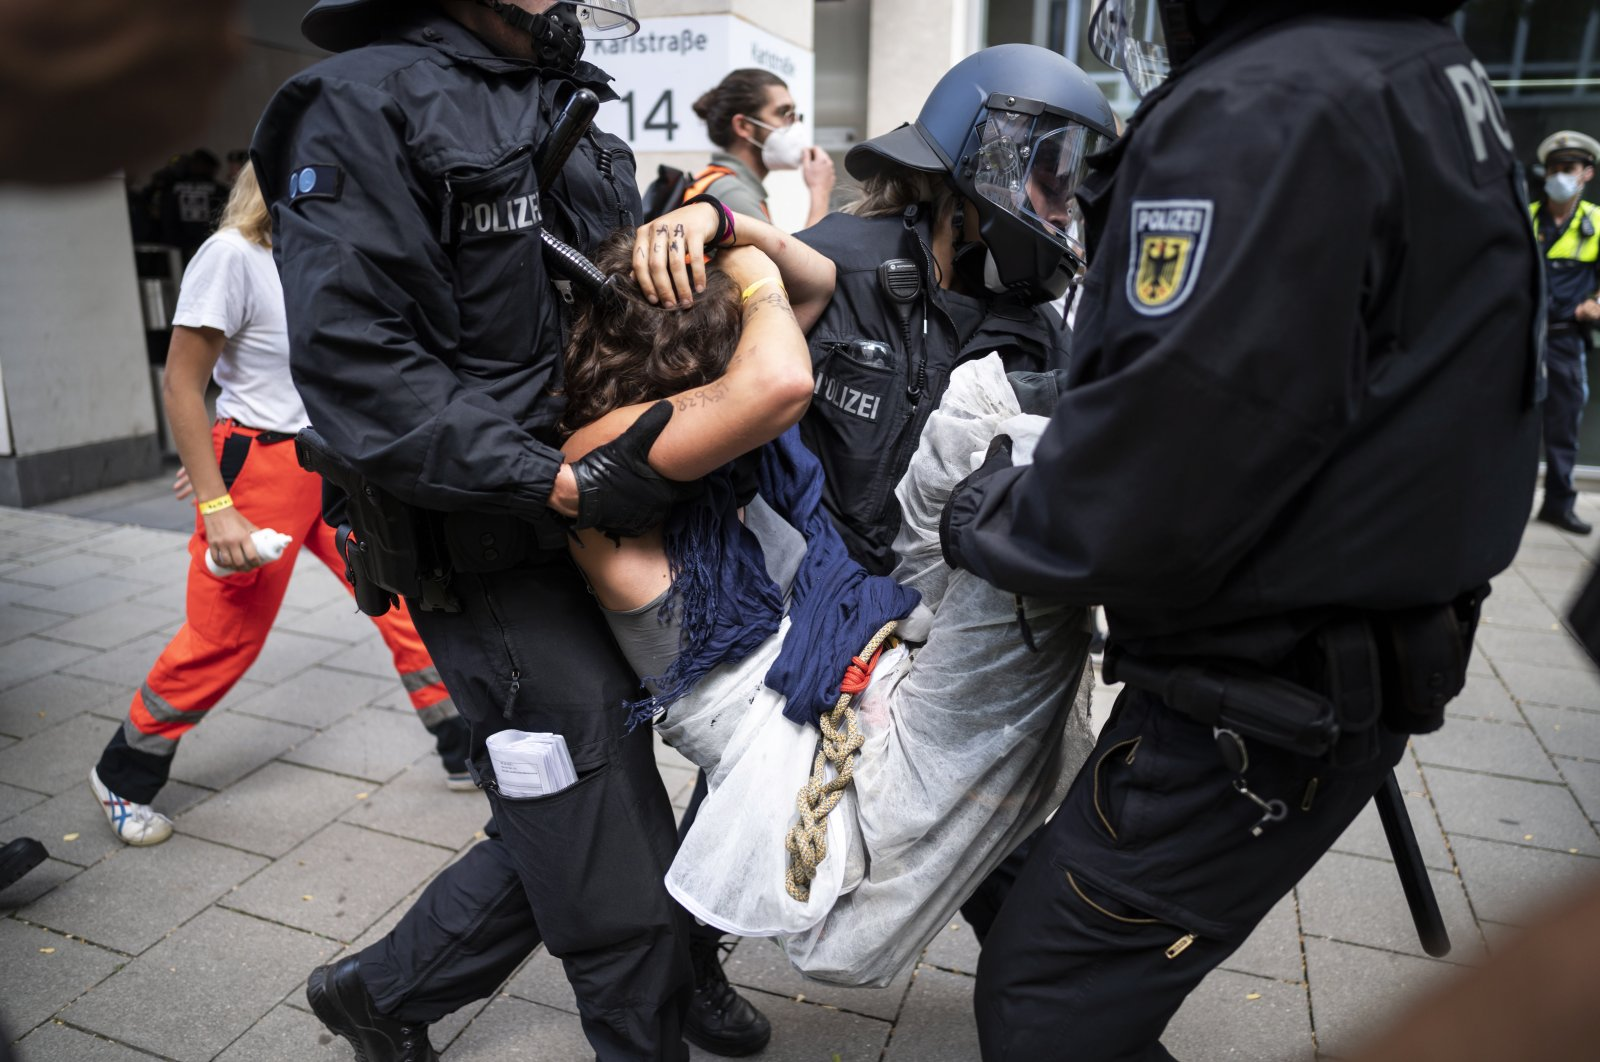 Riot police carry away a demonstrator during a protest against the International Motor Show (IAA) in Munich, Germany, Sept. 10, 2021. (EPA Photo)